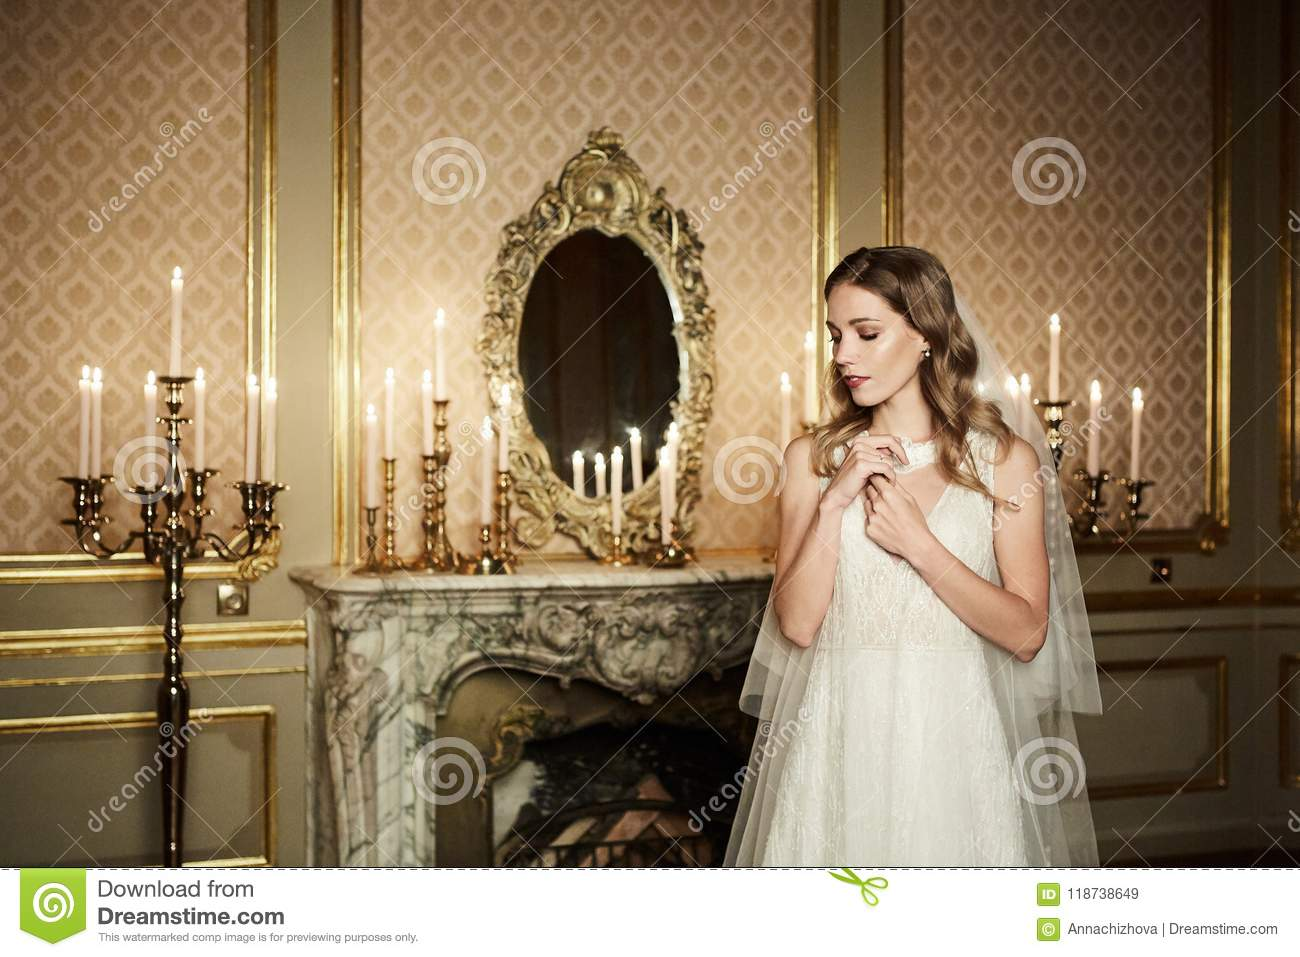 Glamorous Young Bride In Wedding Dress Poses In Interior In Baroque